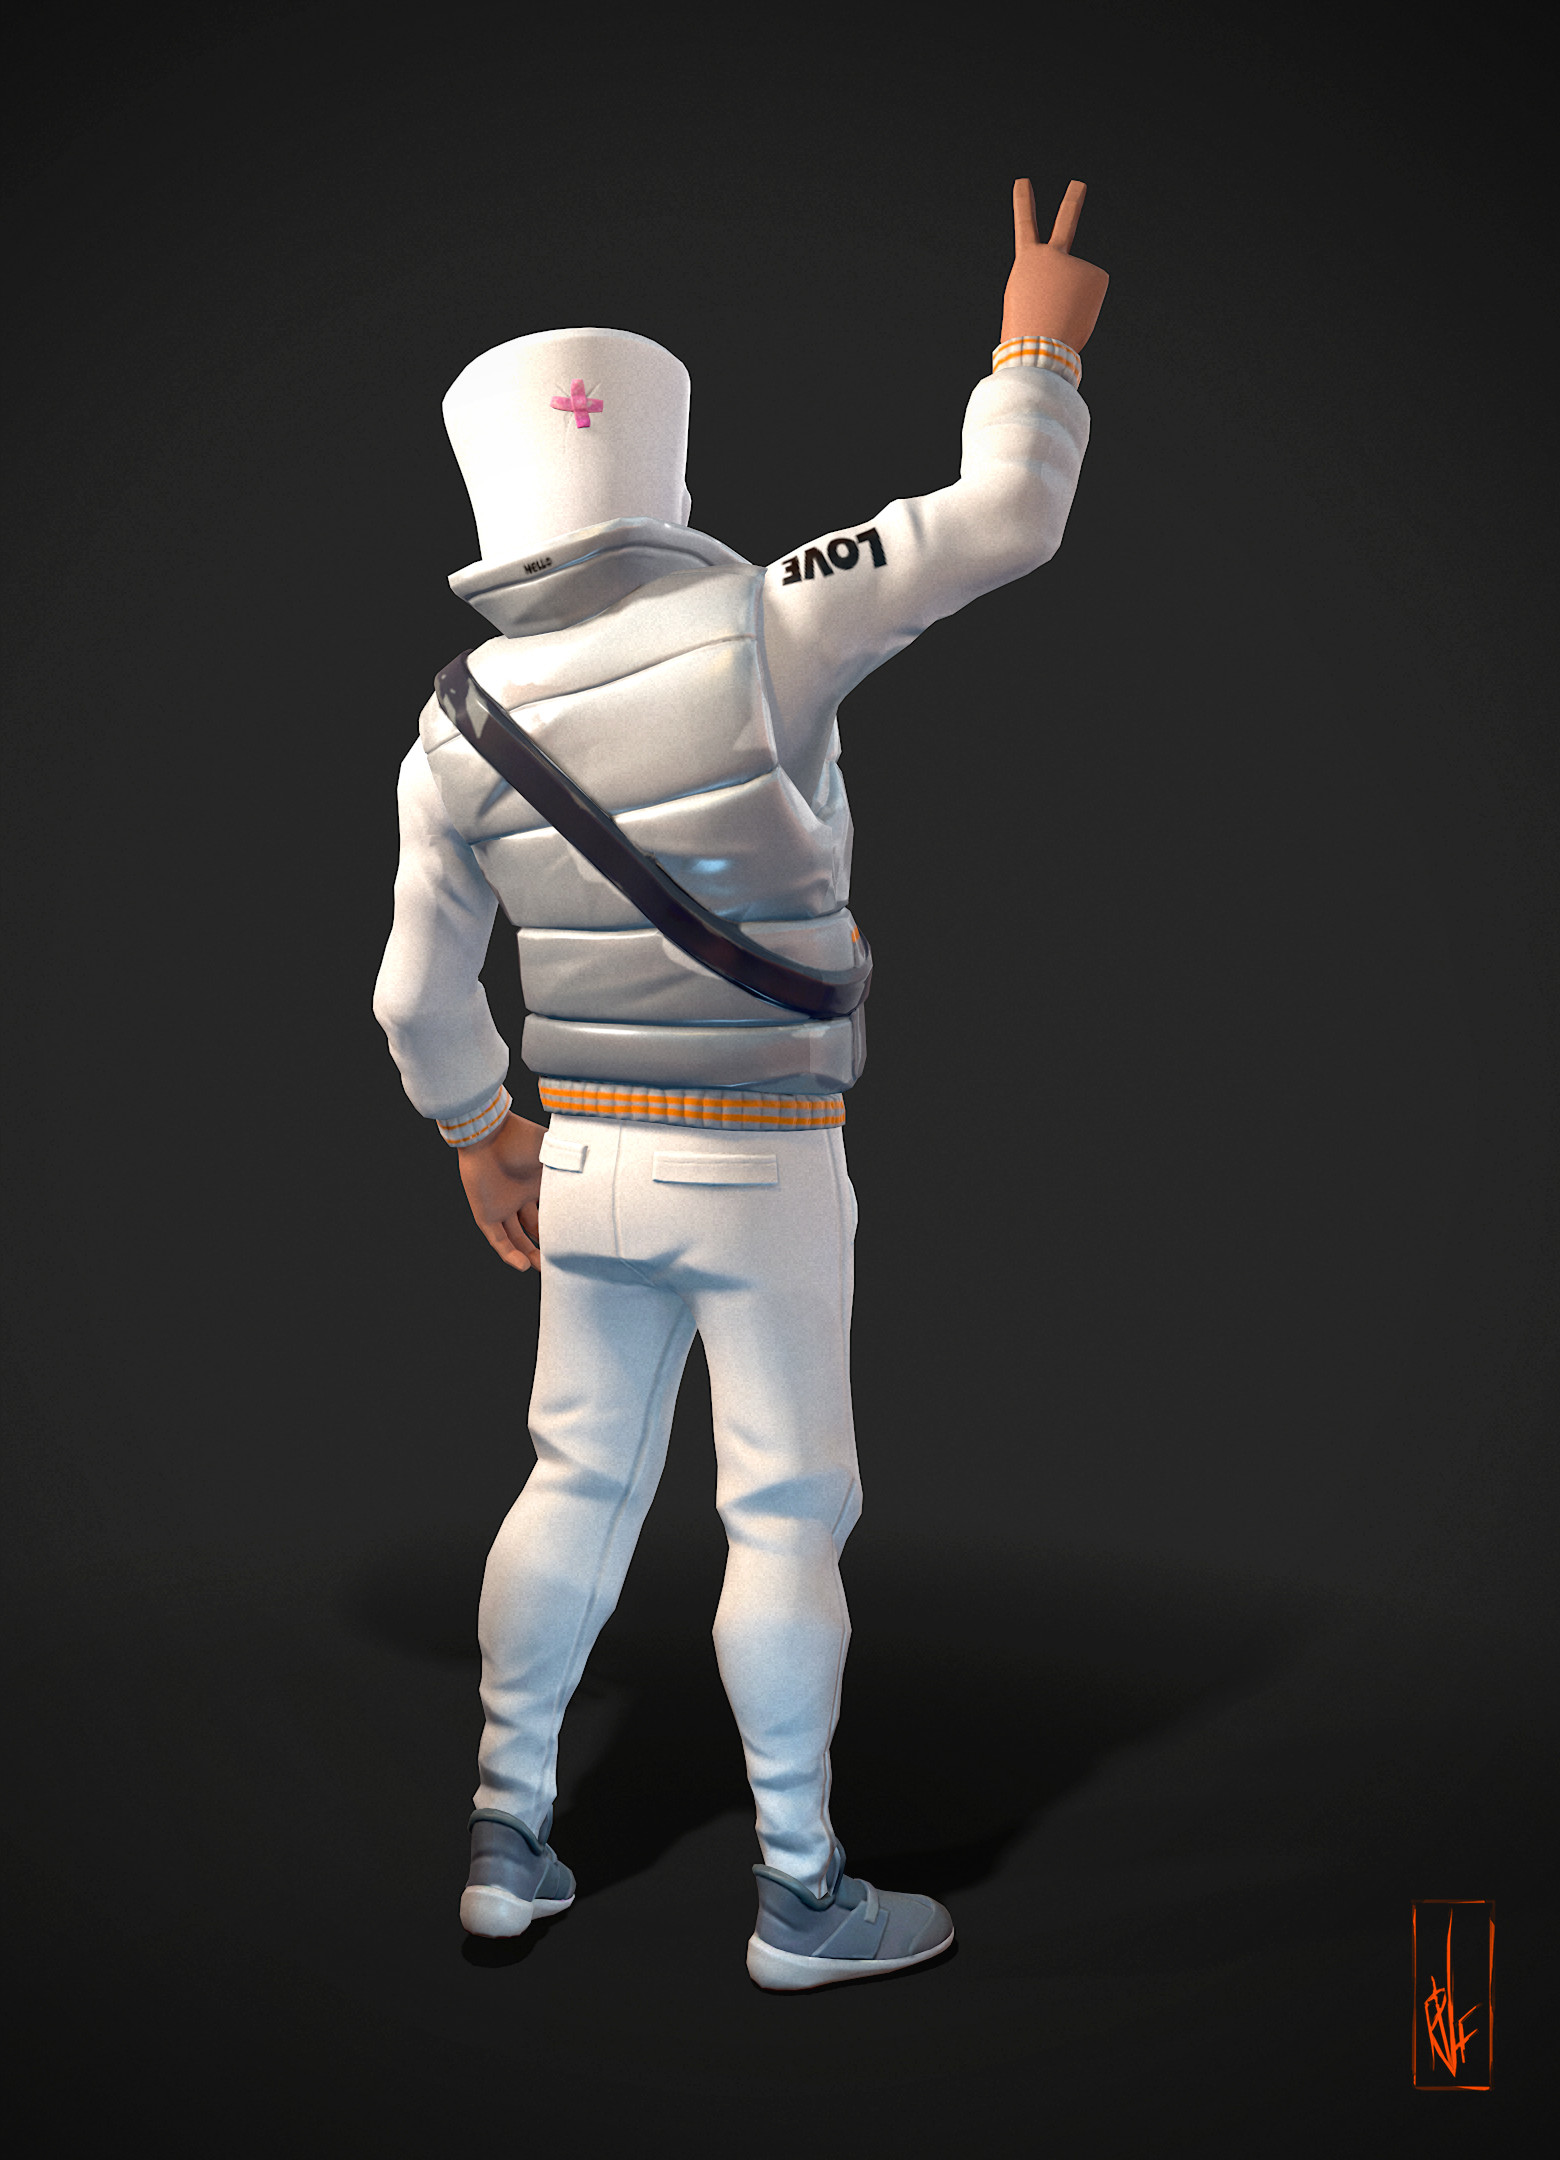 Rob Ferrao - Fortnite Marshmello Skin